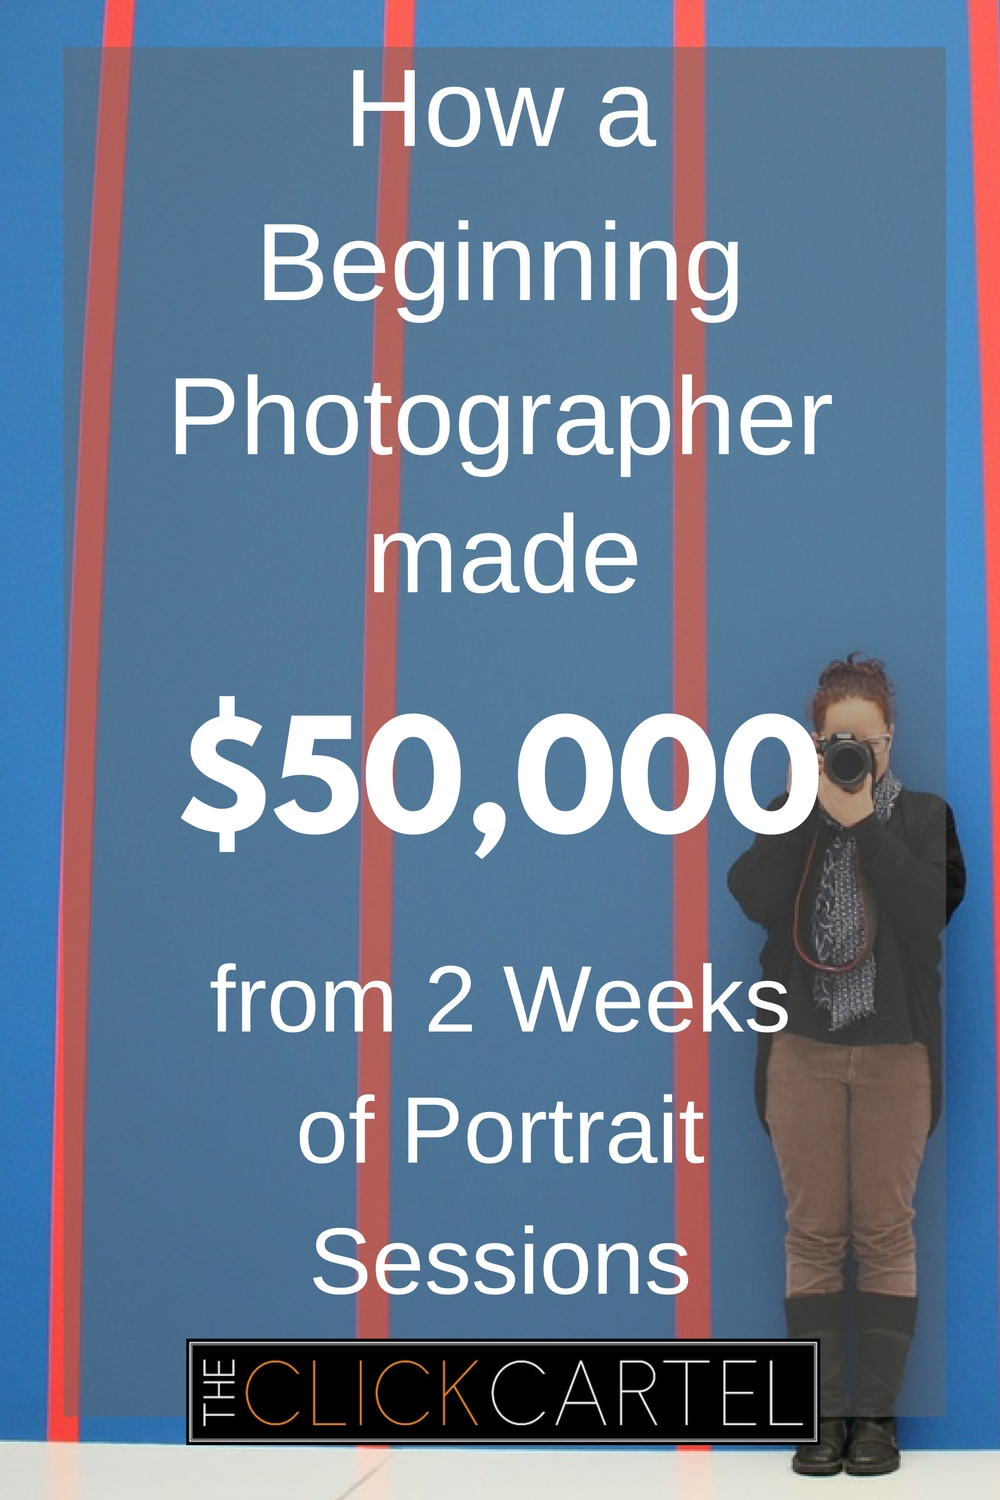 How a beginning photograper made $50K from two weeks of family portrait sessions.